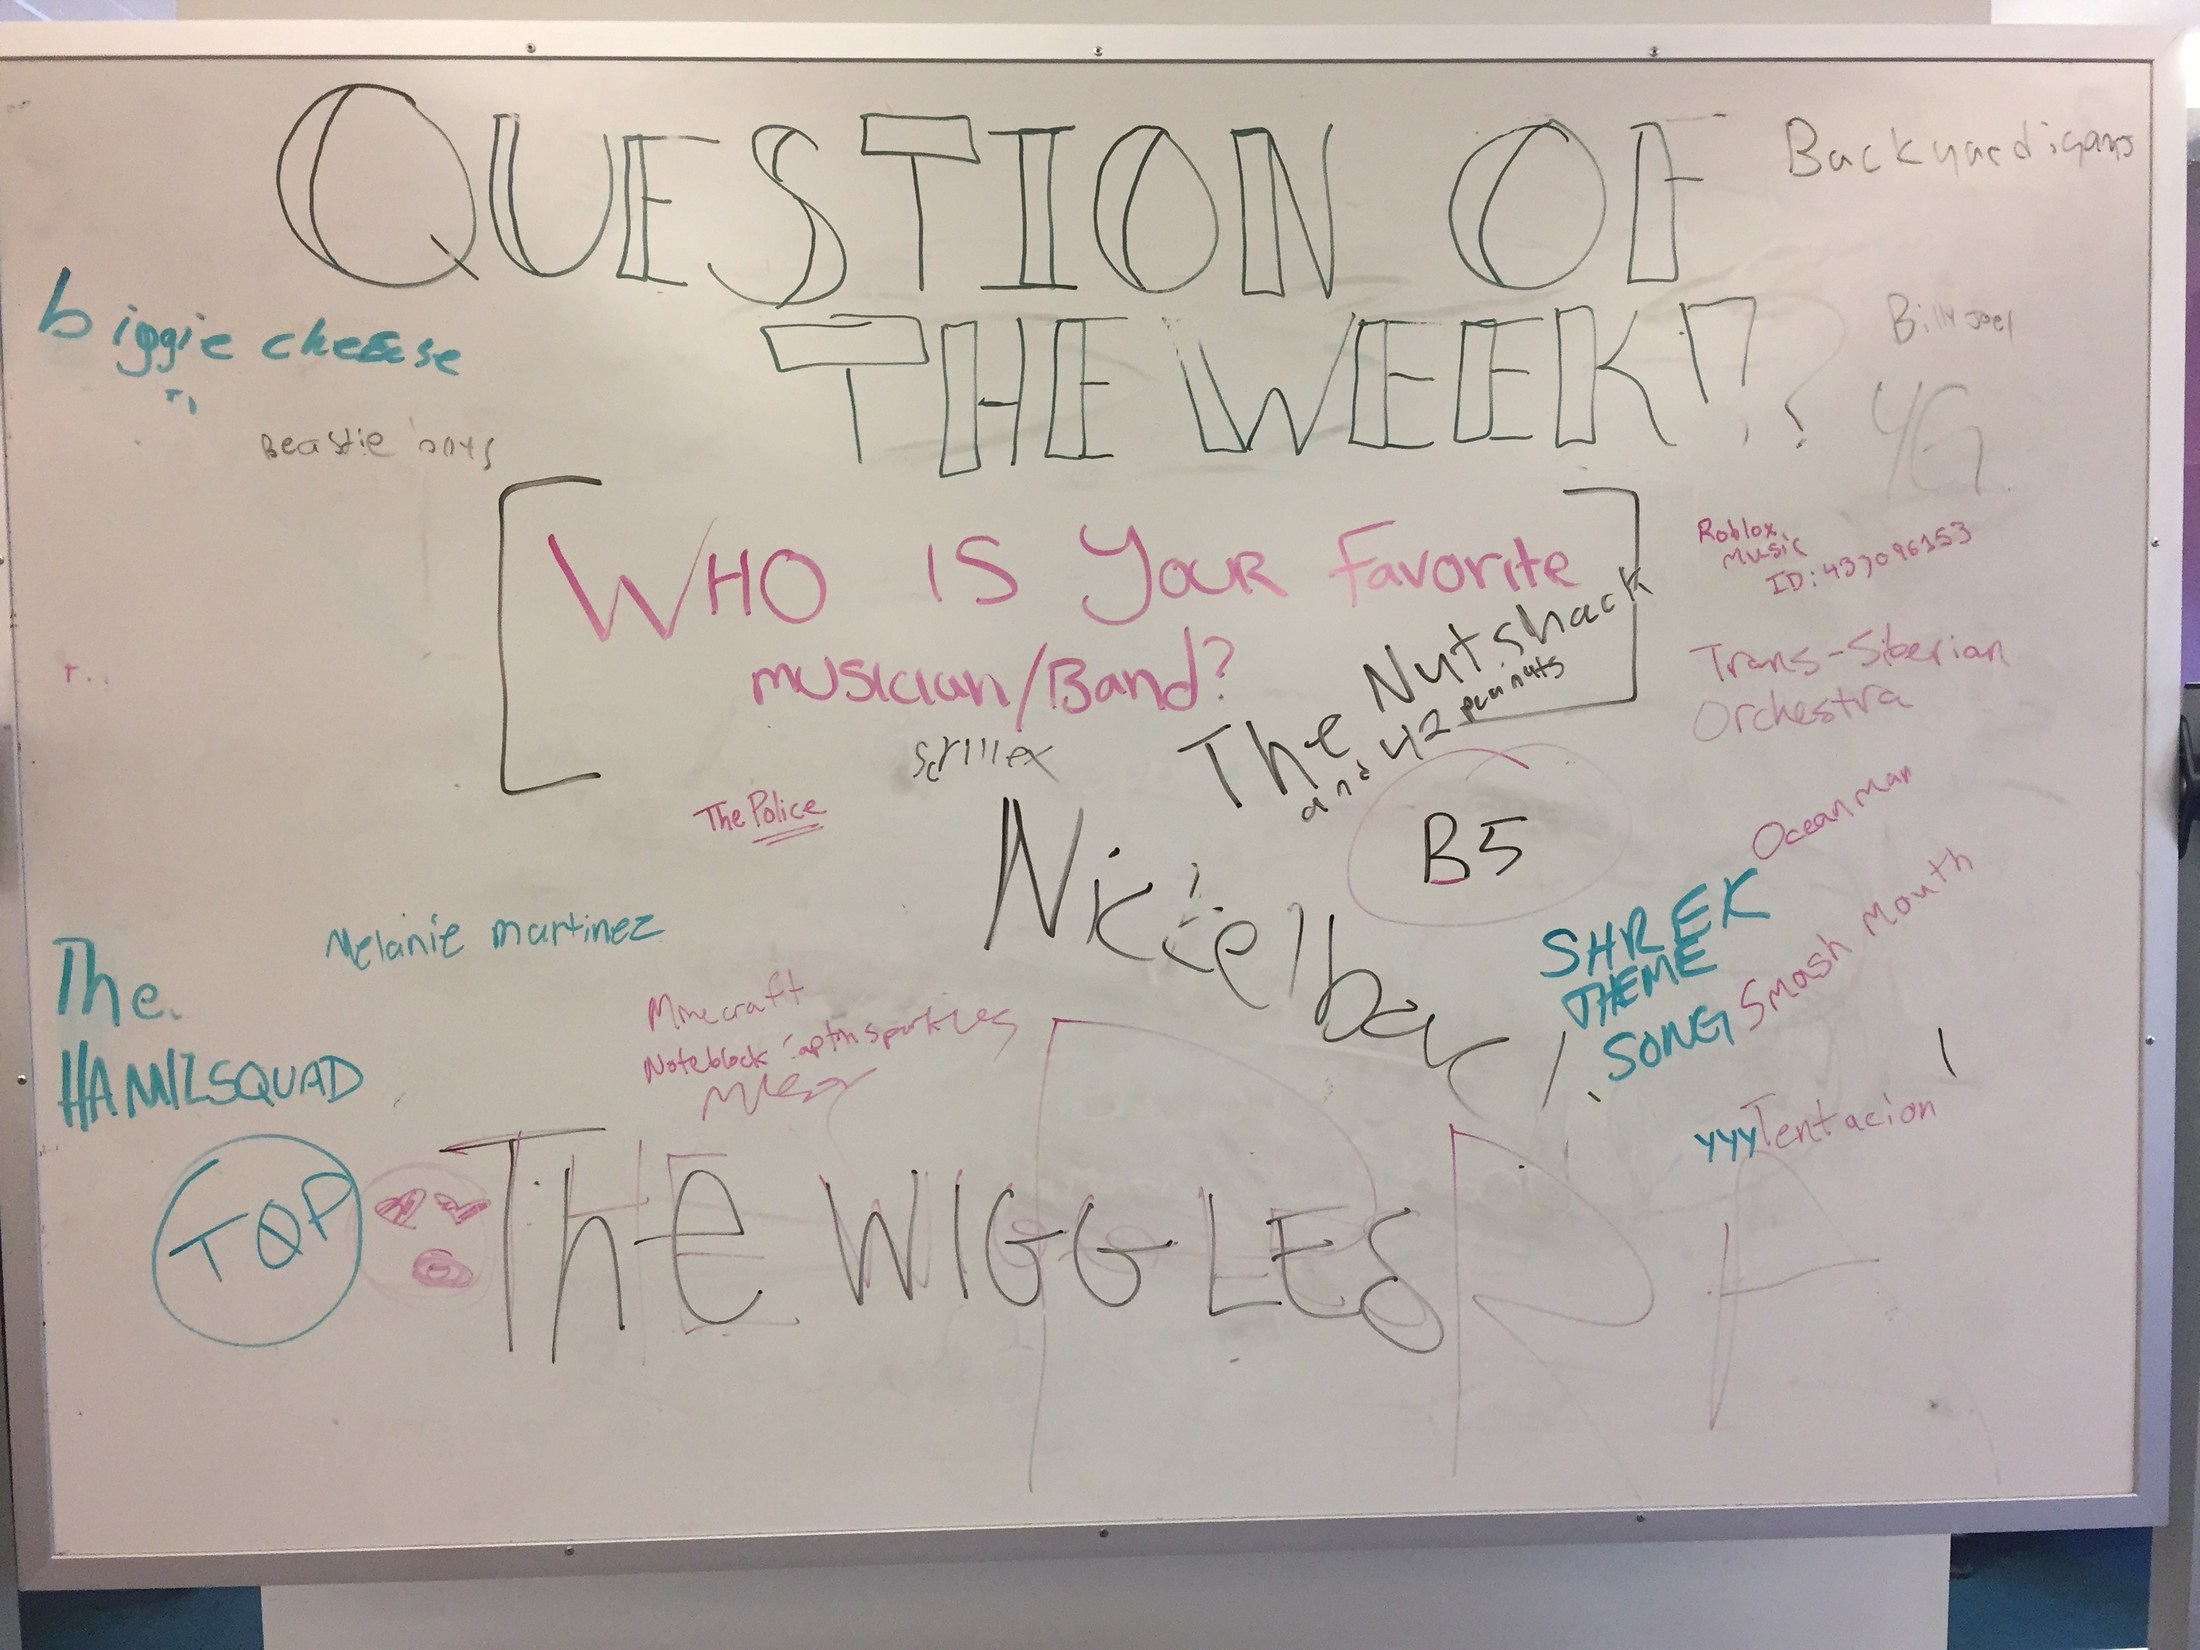 Question of the Week - Who is your favorite musical/band?